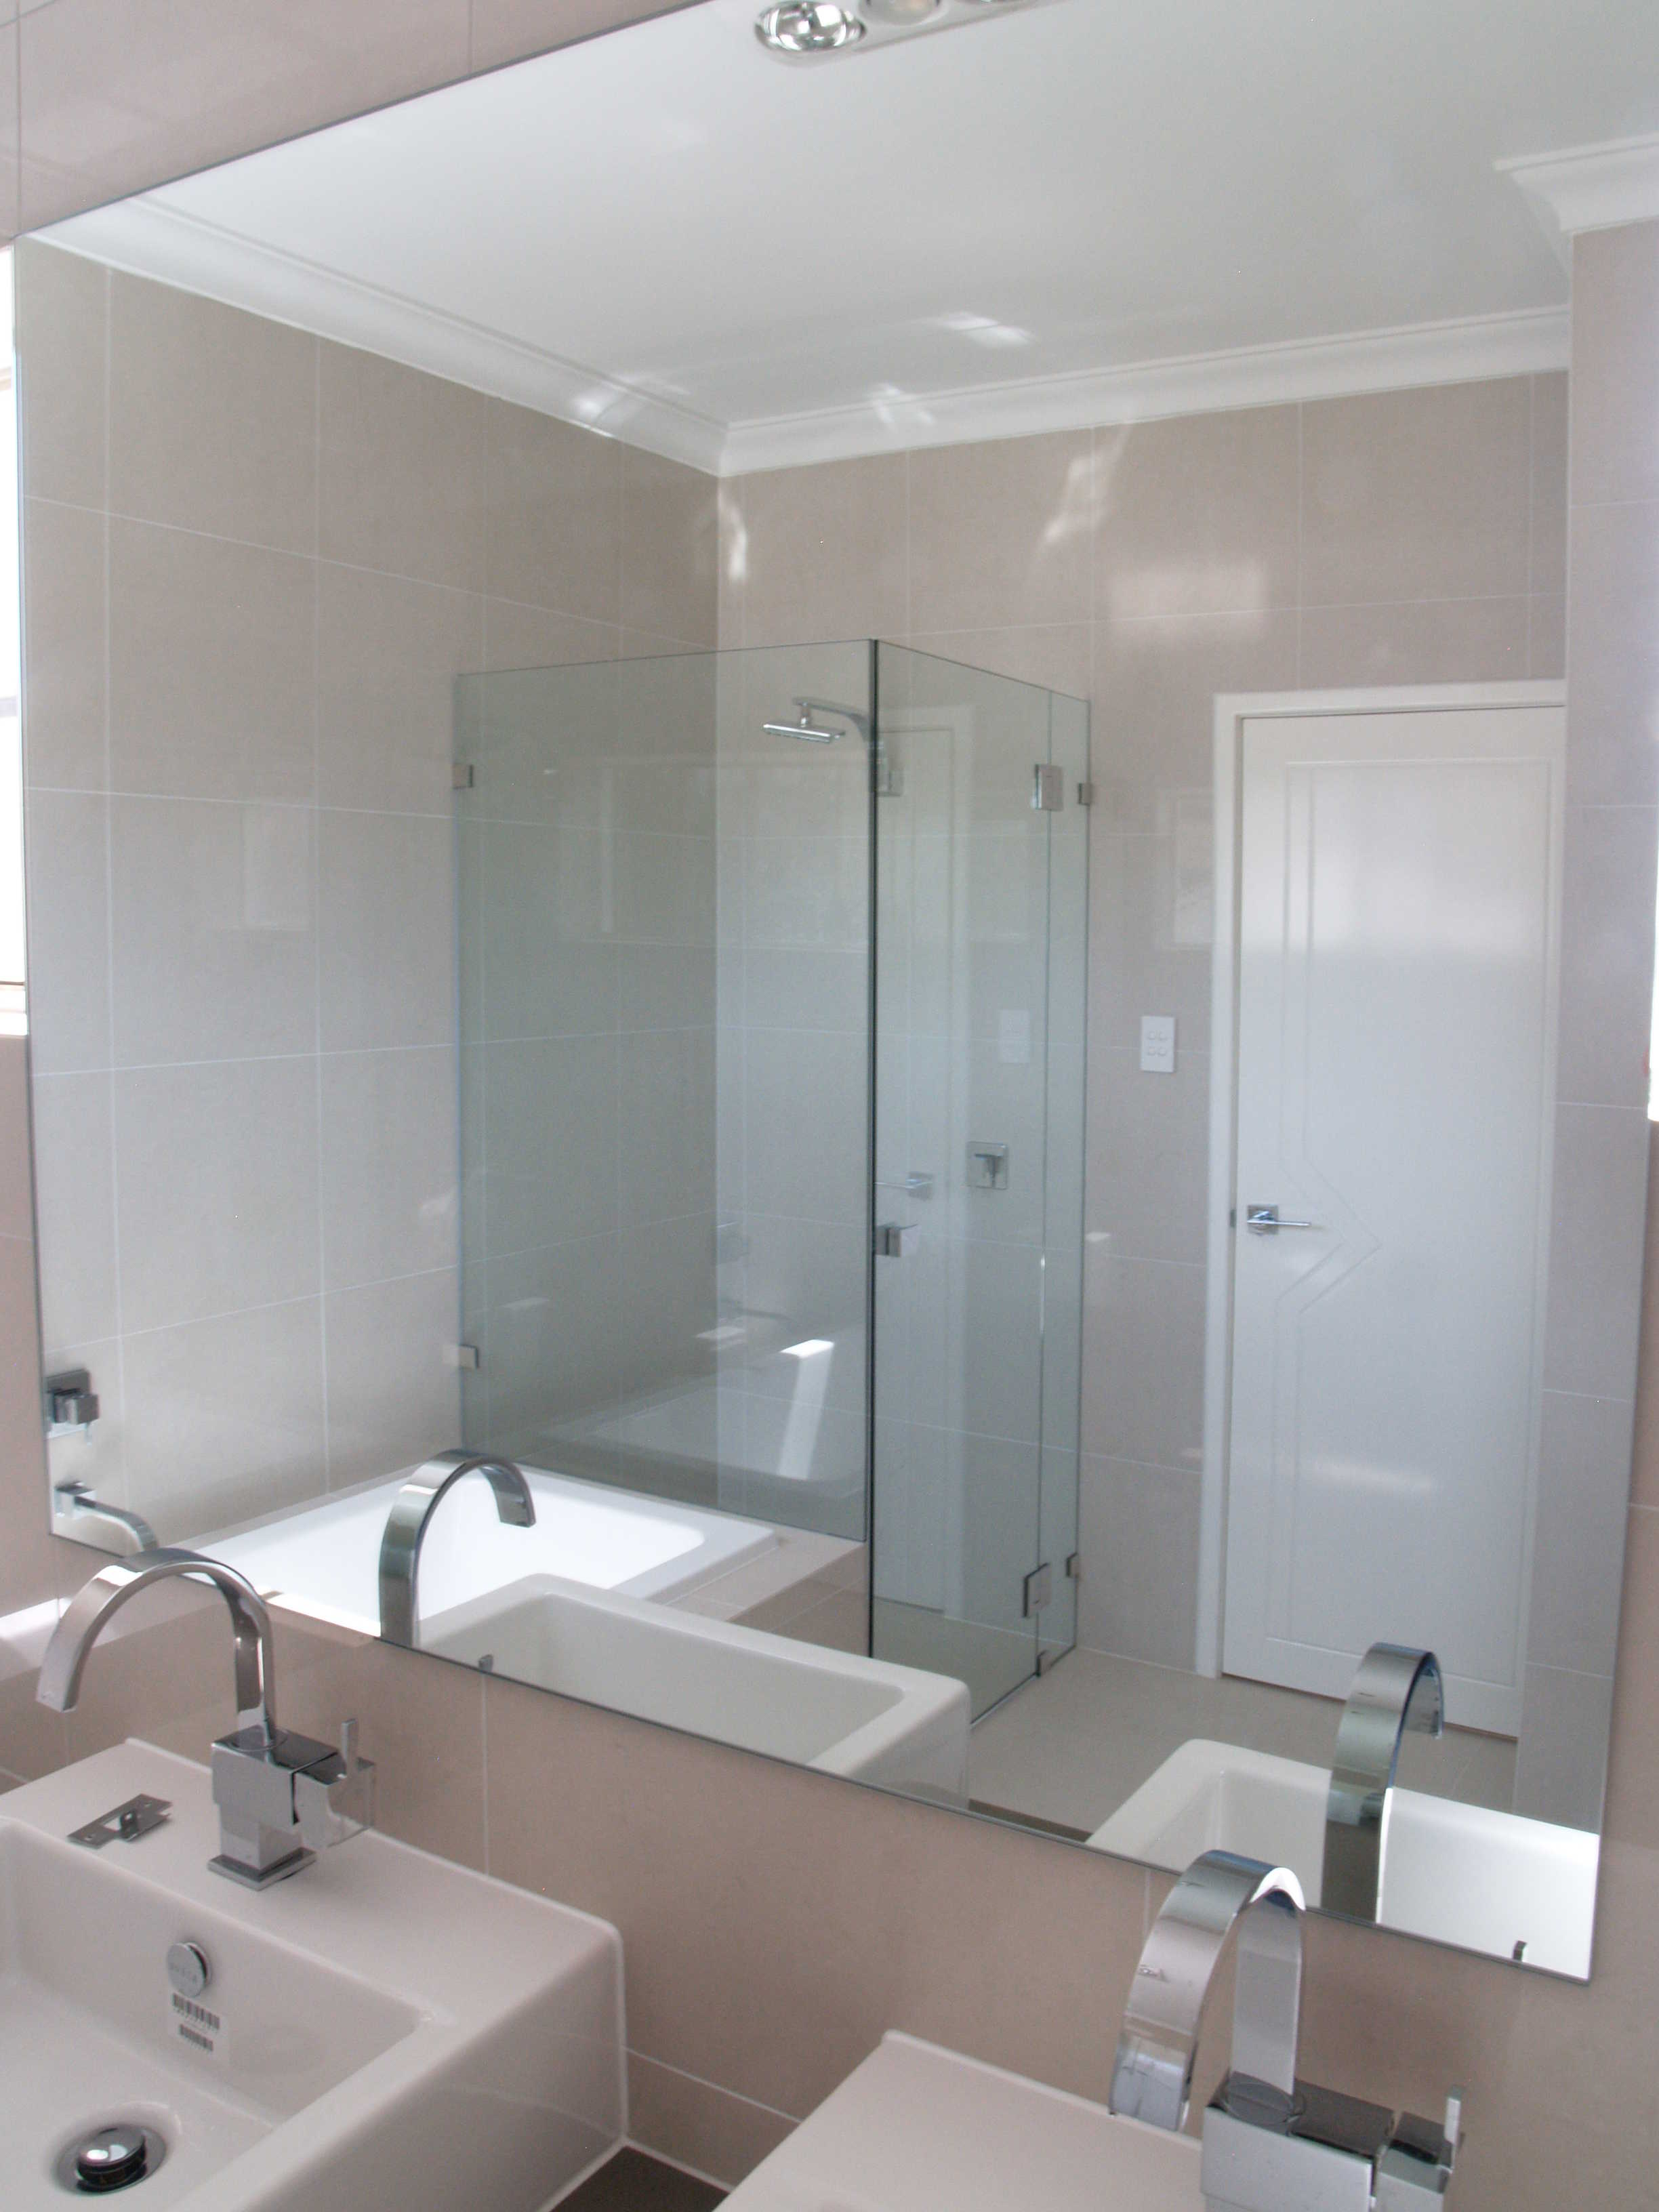 Bathroom mirrors perthbedroom mirrorshallway mirrors bathroom bedroom hallway mirrors amipublicfo Choice Image